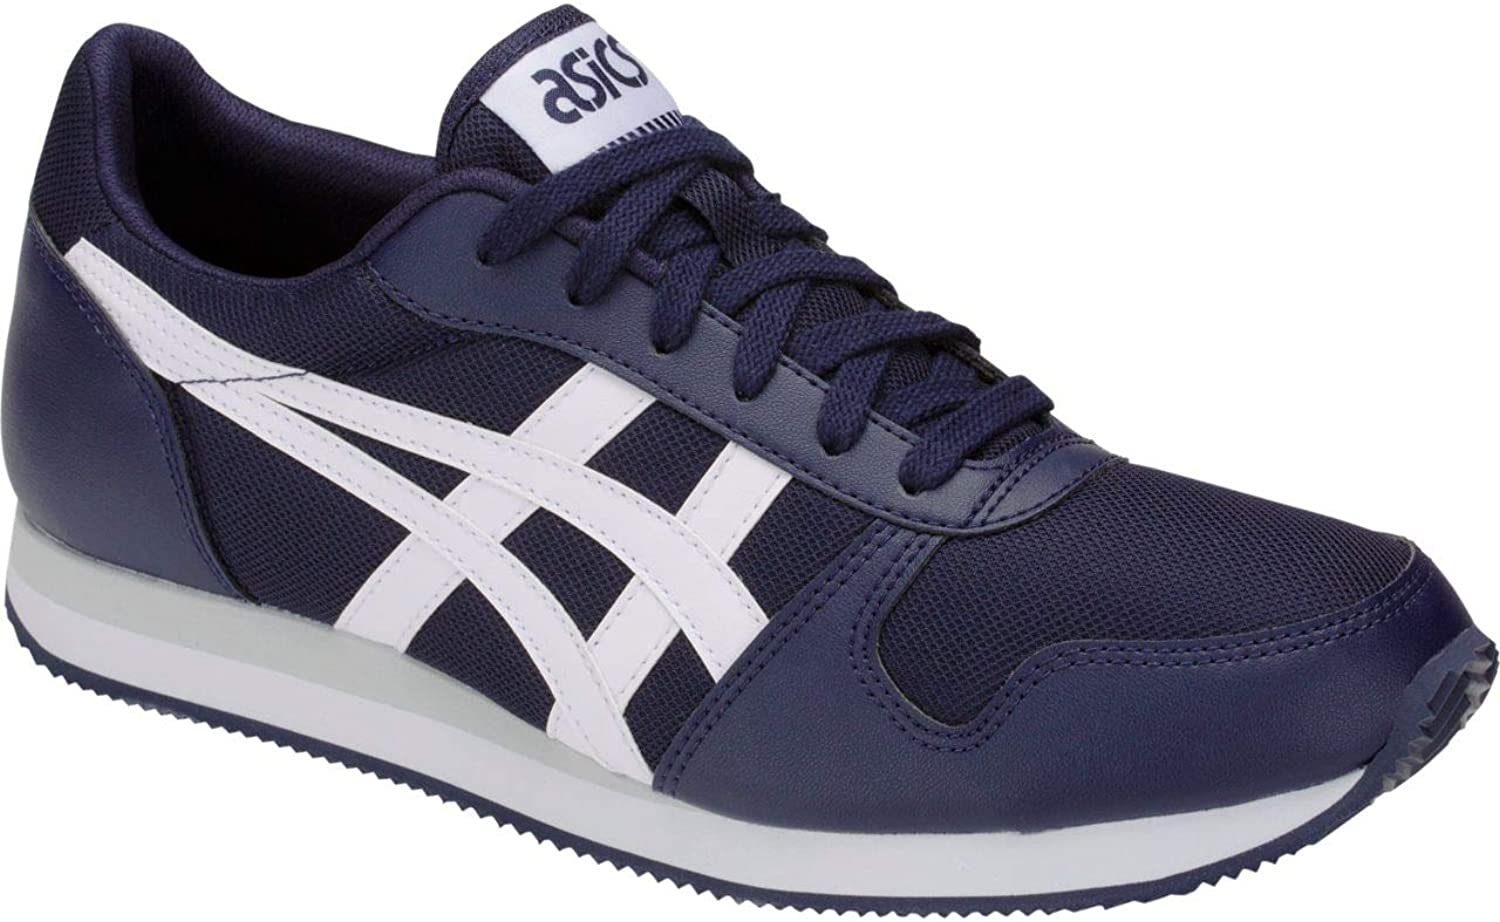 ASICS Curreo 2 Trainers in Navy and White